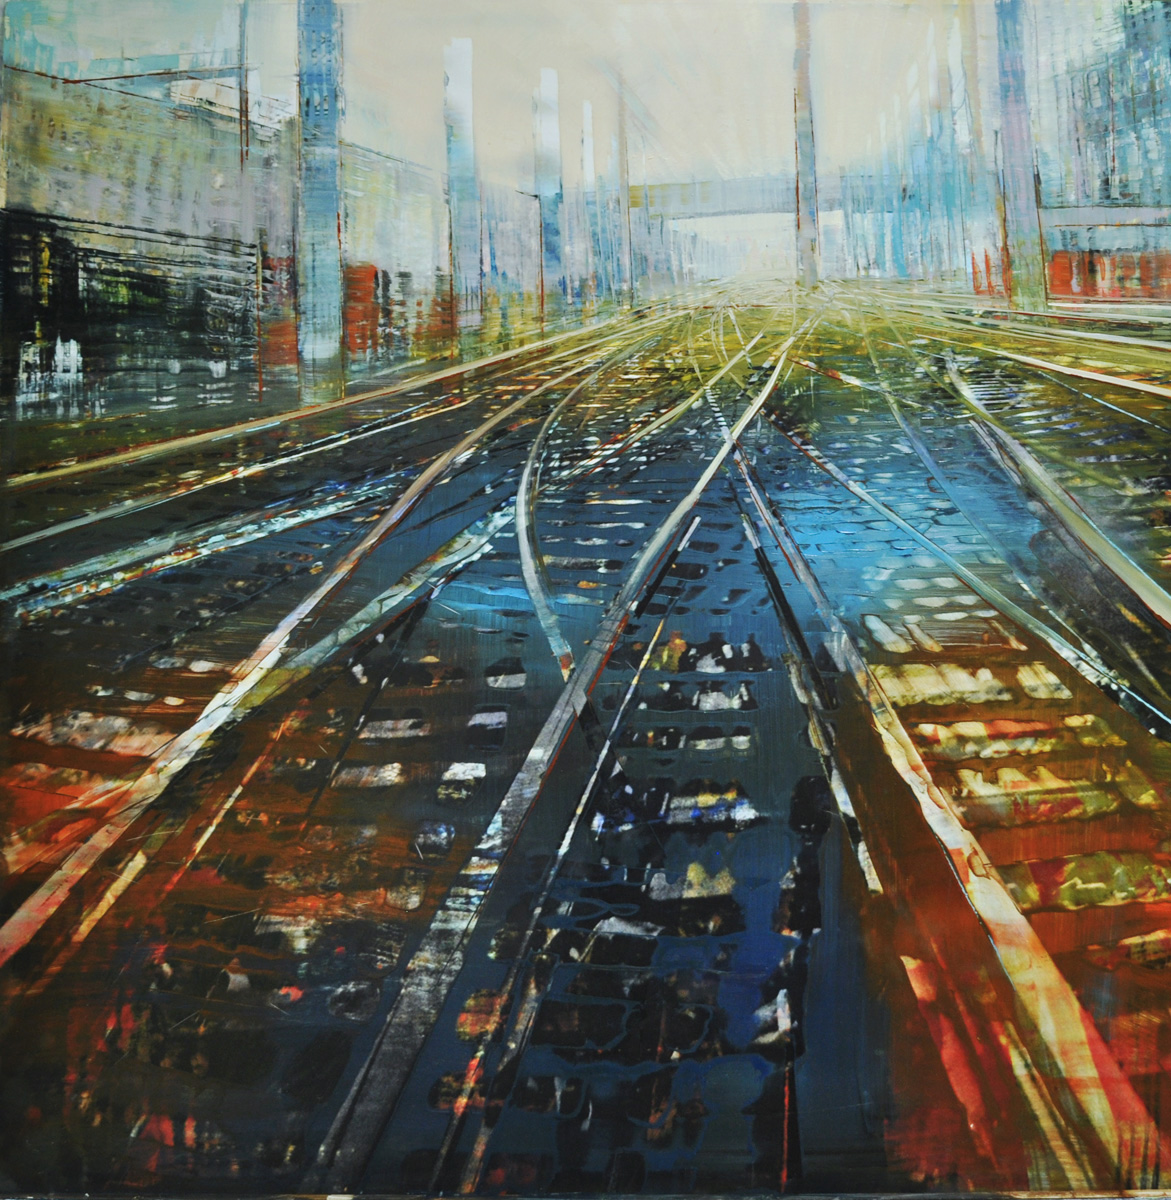 Dunlop_New York Rails_oil on mixed media mount on aluminum_36x36_6500.jpg